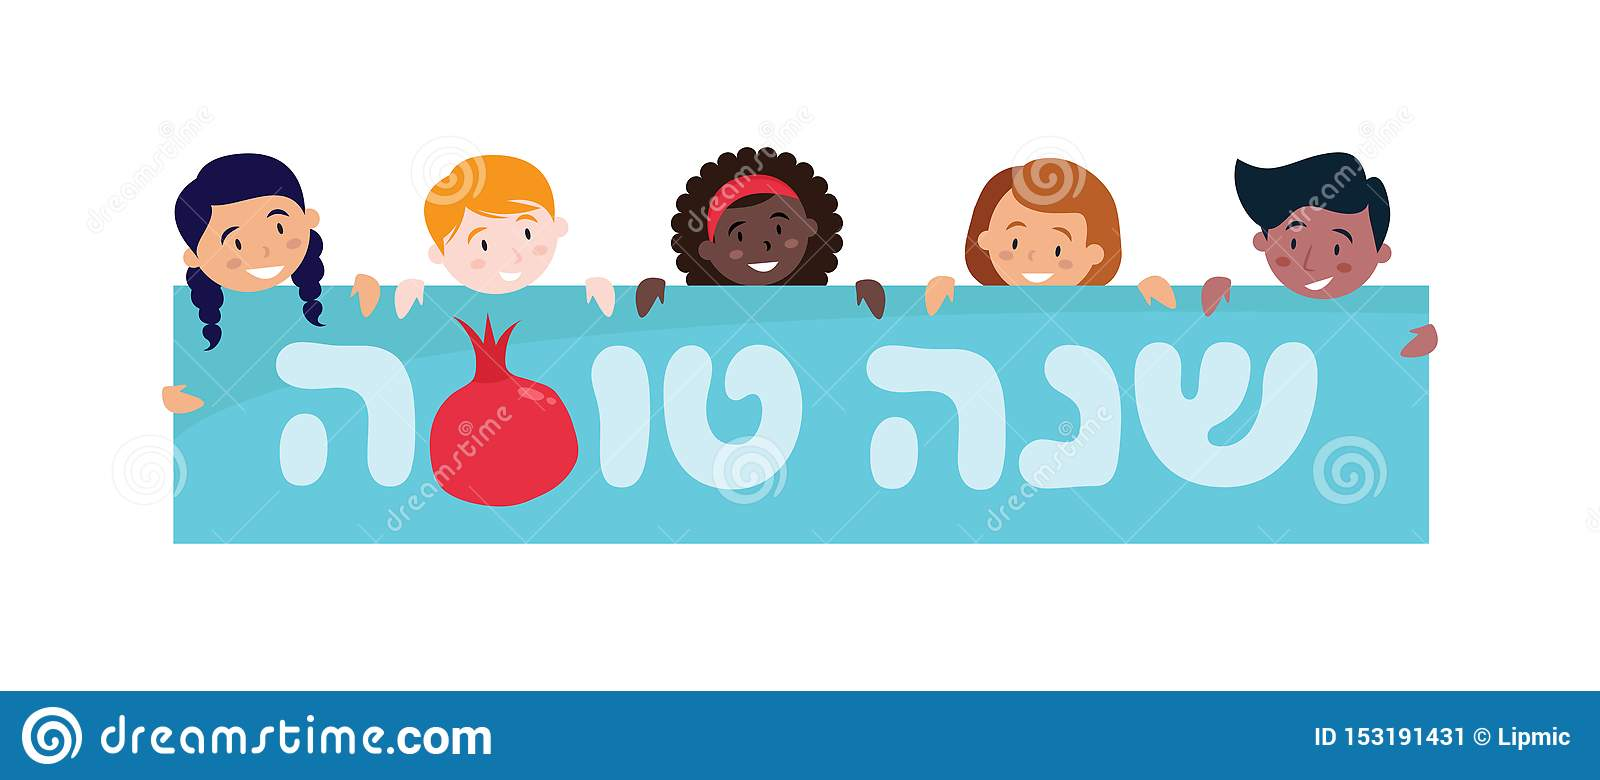 Shana tova greeting card with happy new year in hebrew. Vector